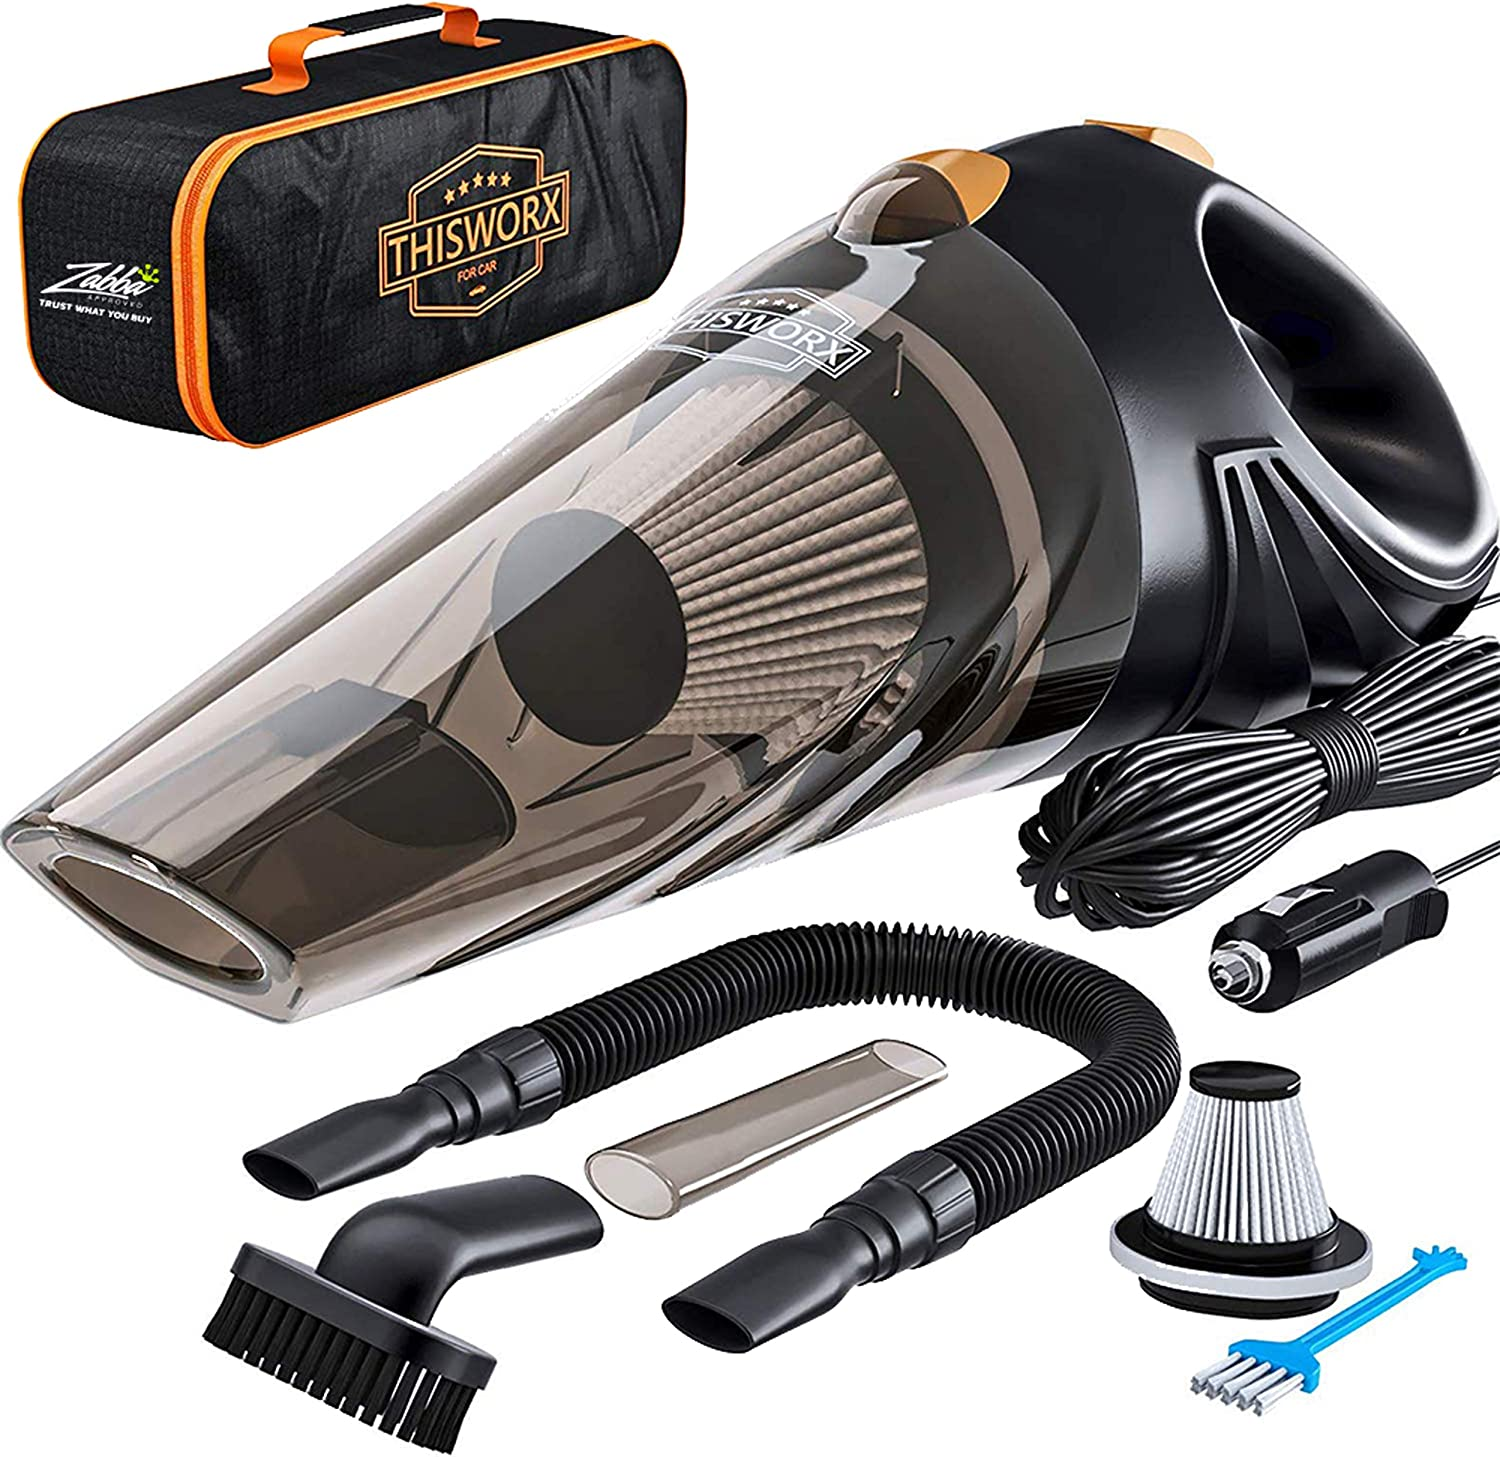 This Portable Car Vacuum Cleaner Cleans Every Corner Of Your Car